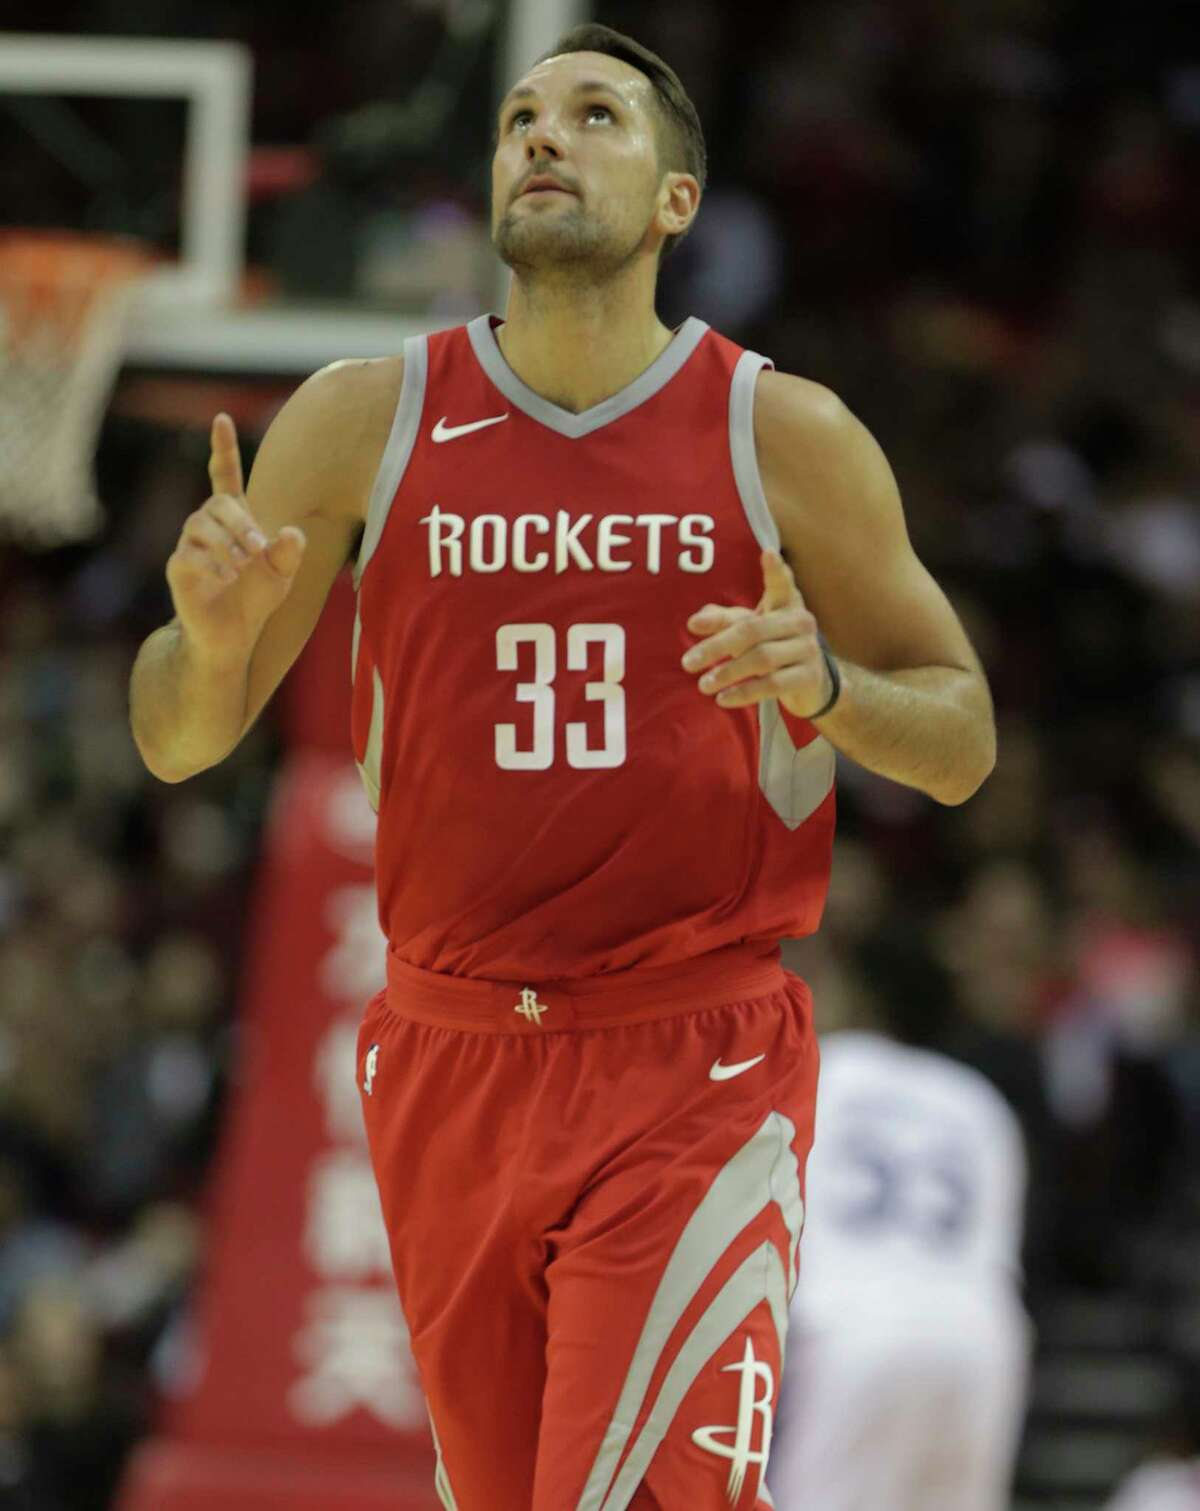 Rockets forward Ryan Anderson came off the bench in Saturday's win over the New York Knicks, and that could be something that happens more often as the season goes along.